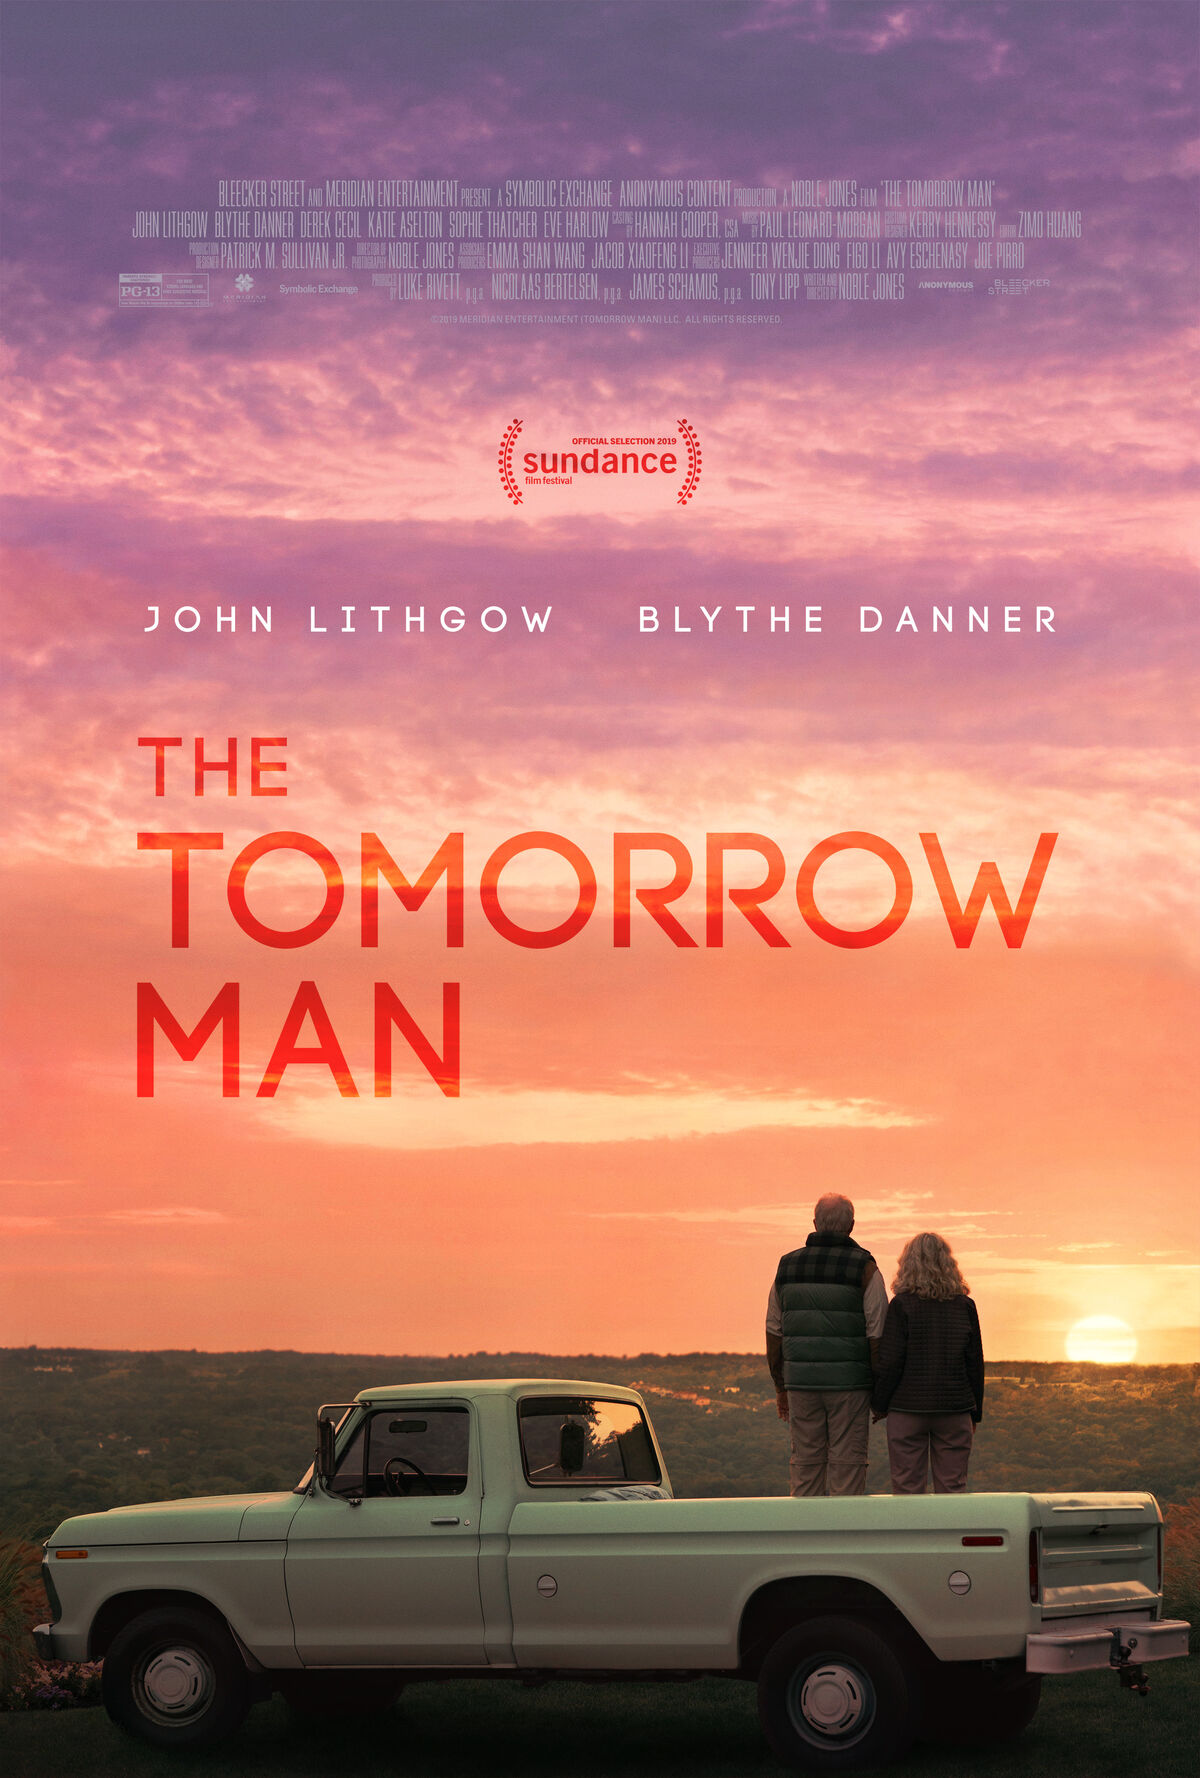 The Tomorrow Man-John Lithgow & Blythe Danner